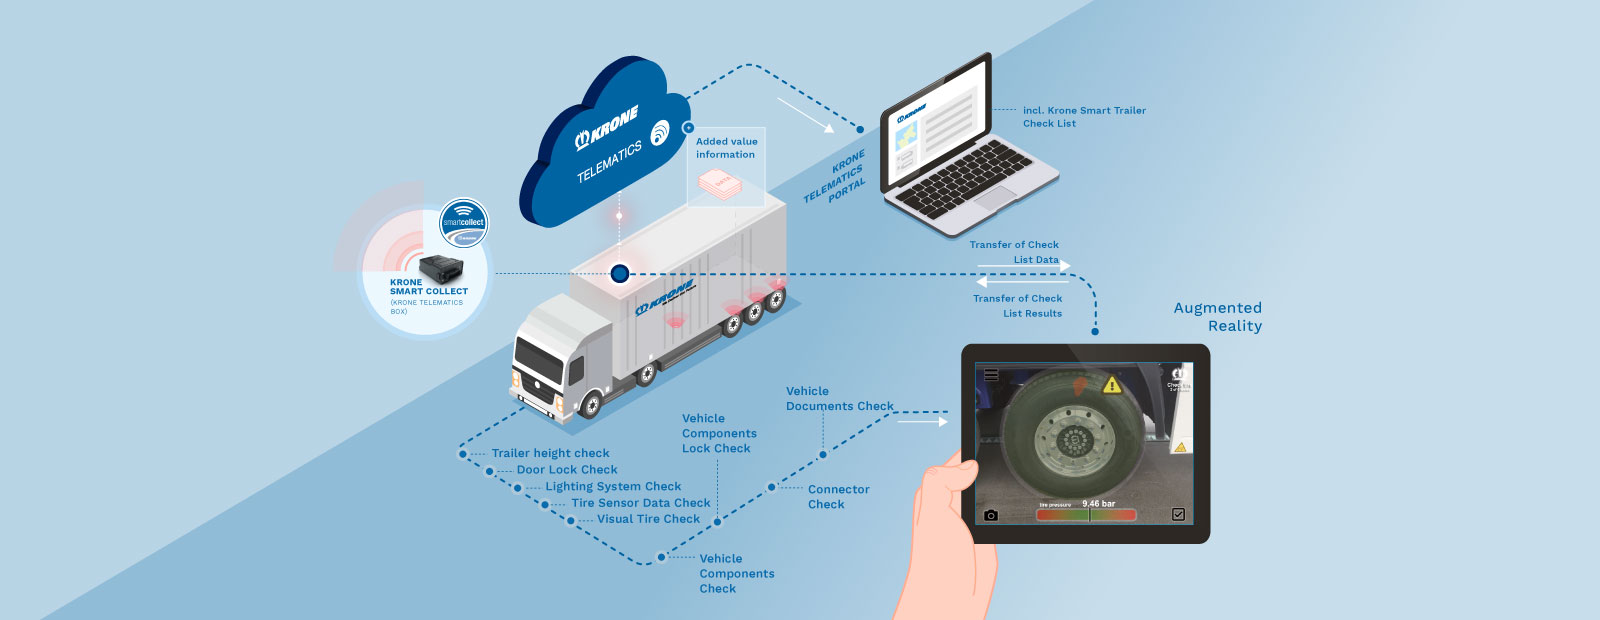 Krone presents Smart Trailer Check